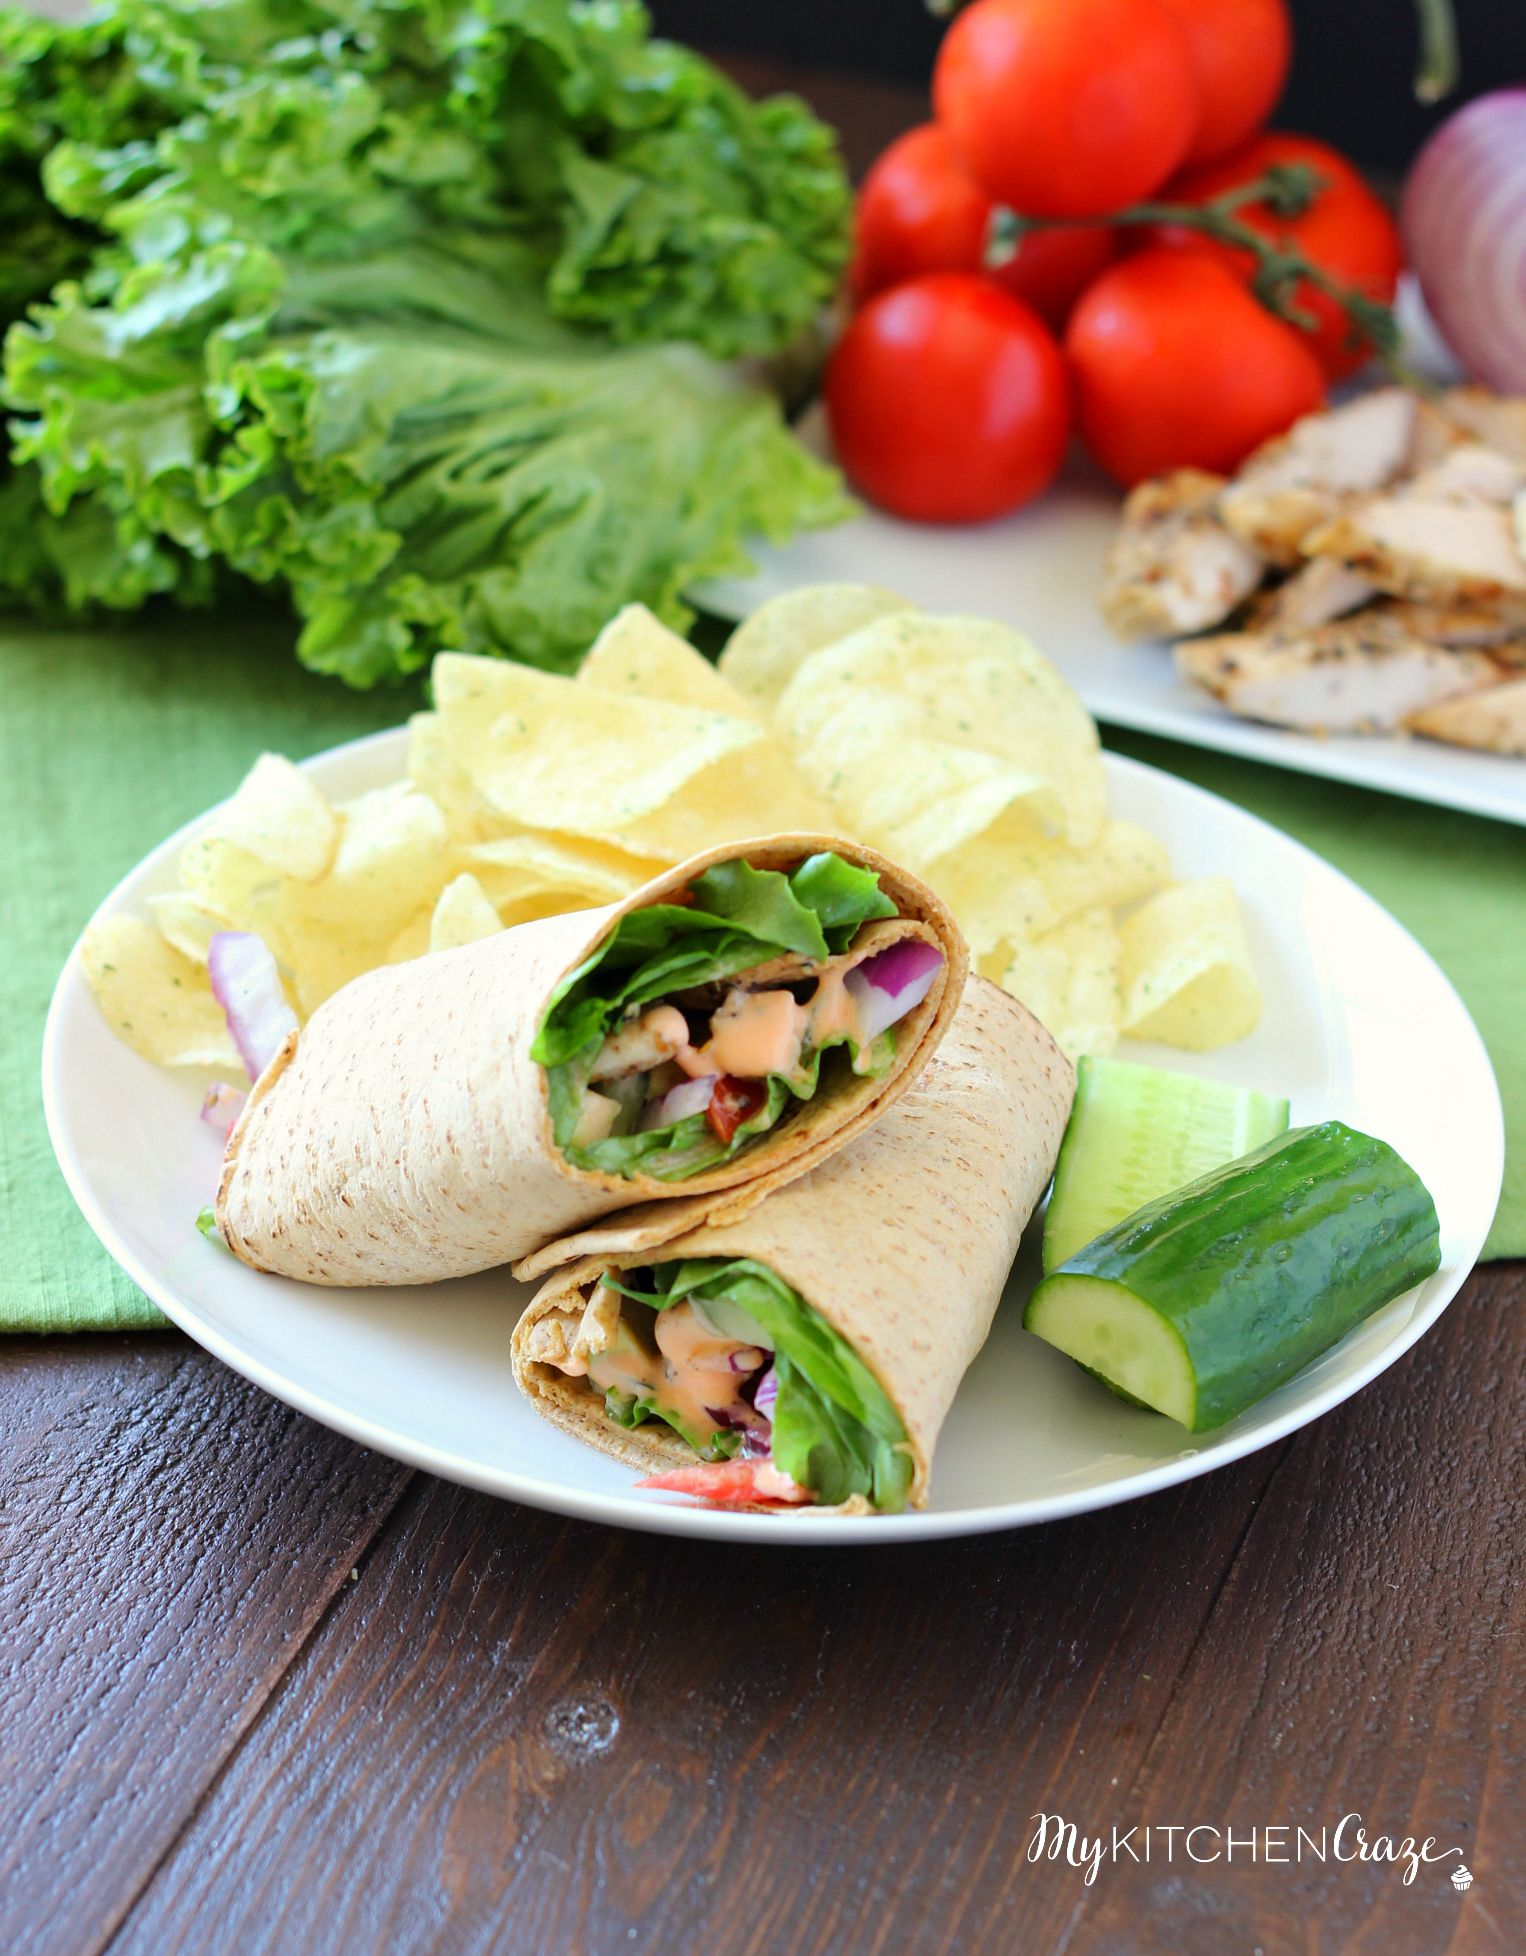 Buffalo Ranch Chicken Wrap ~ mykitchencraze.com ~ Grilled chicken smothered in buffalo ranch sauce, then added with your favorite vegetables and a wrap. Healthy, quick and delicious!